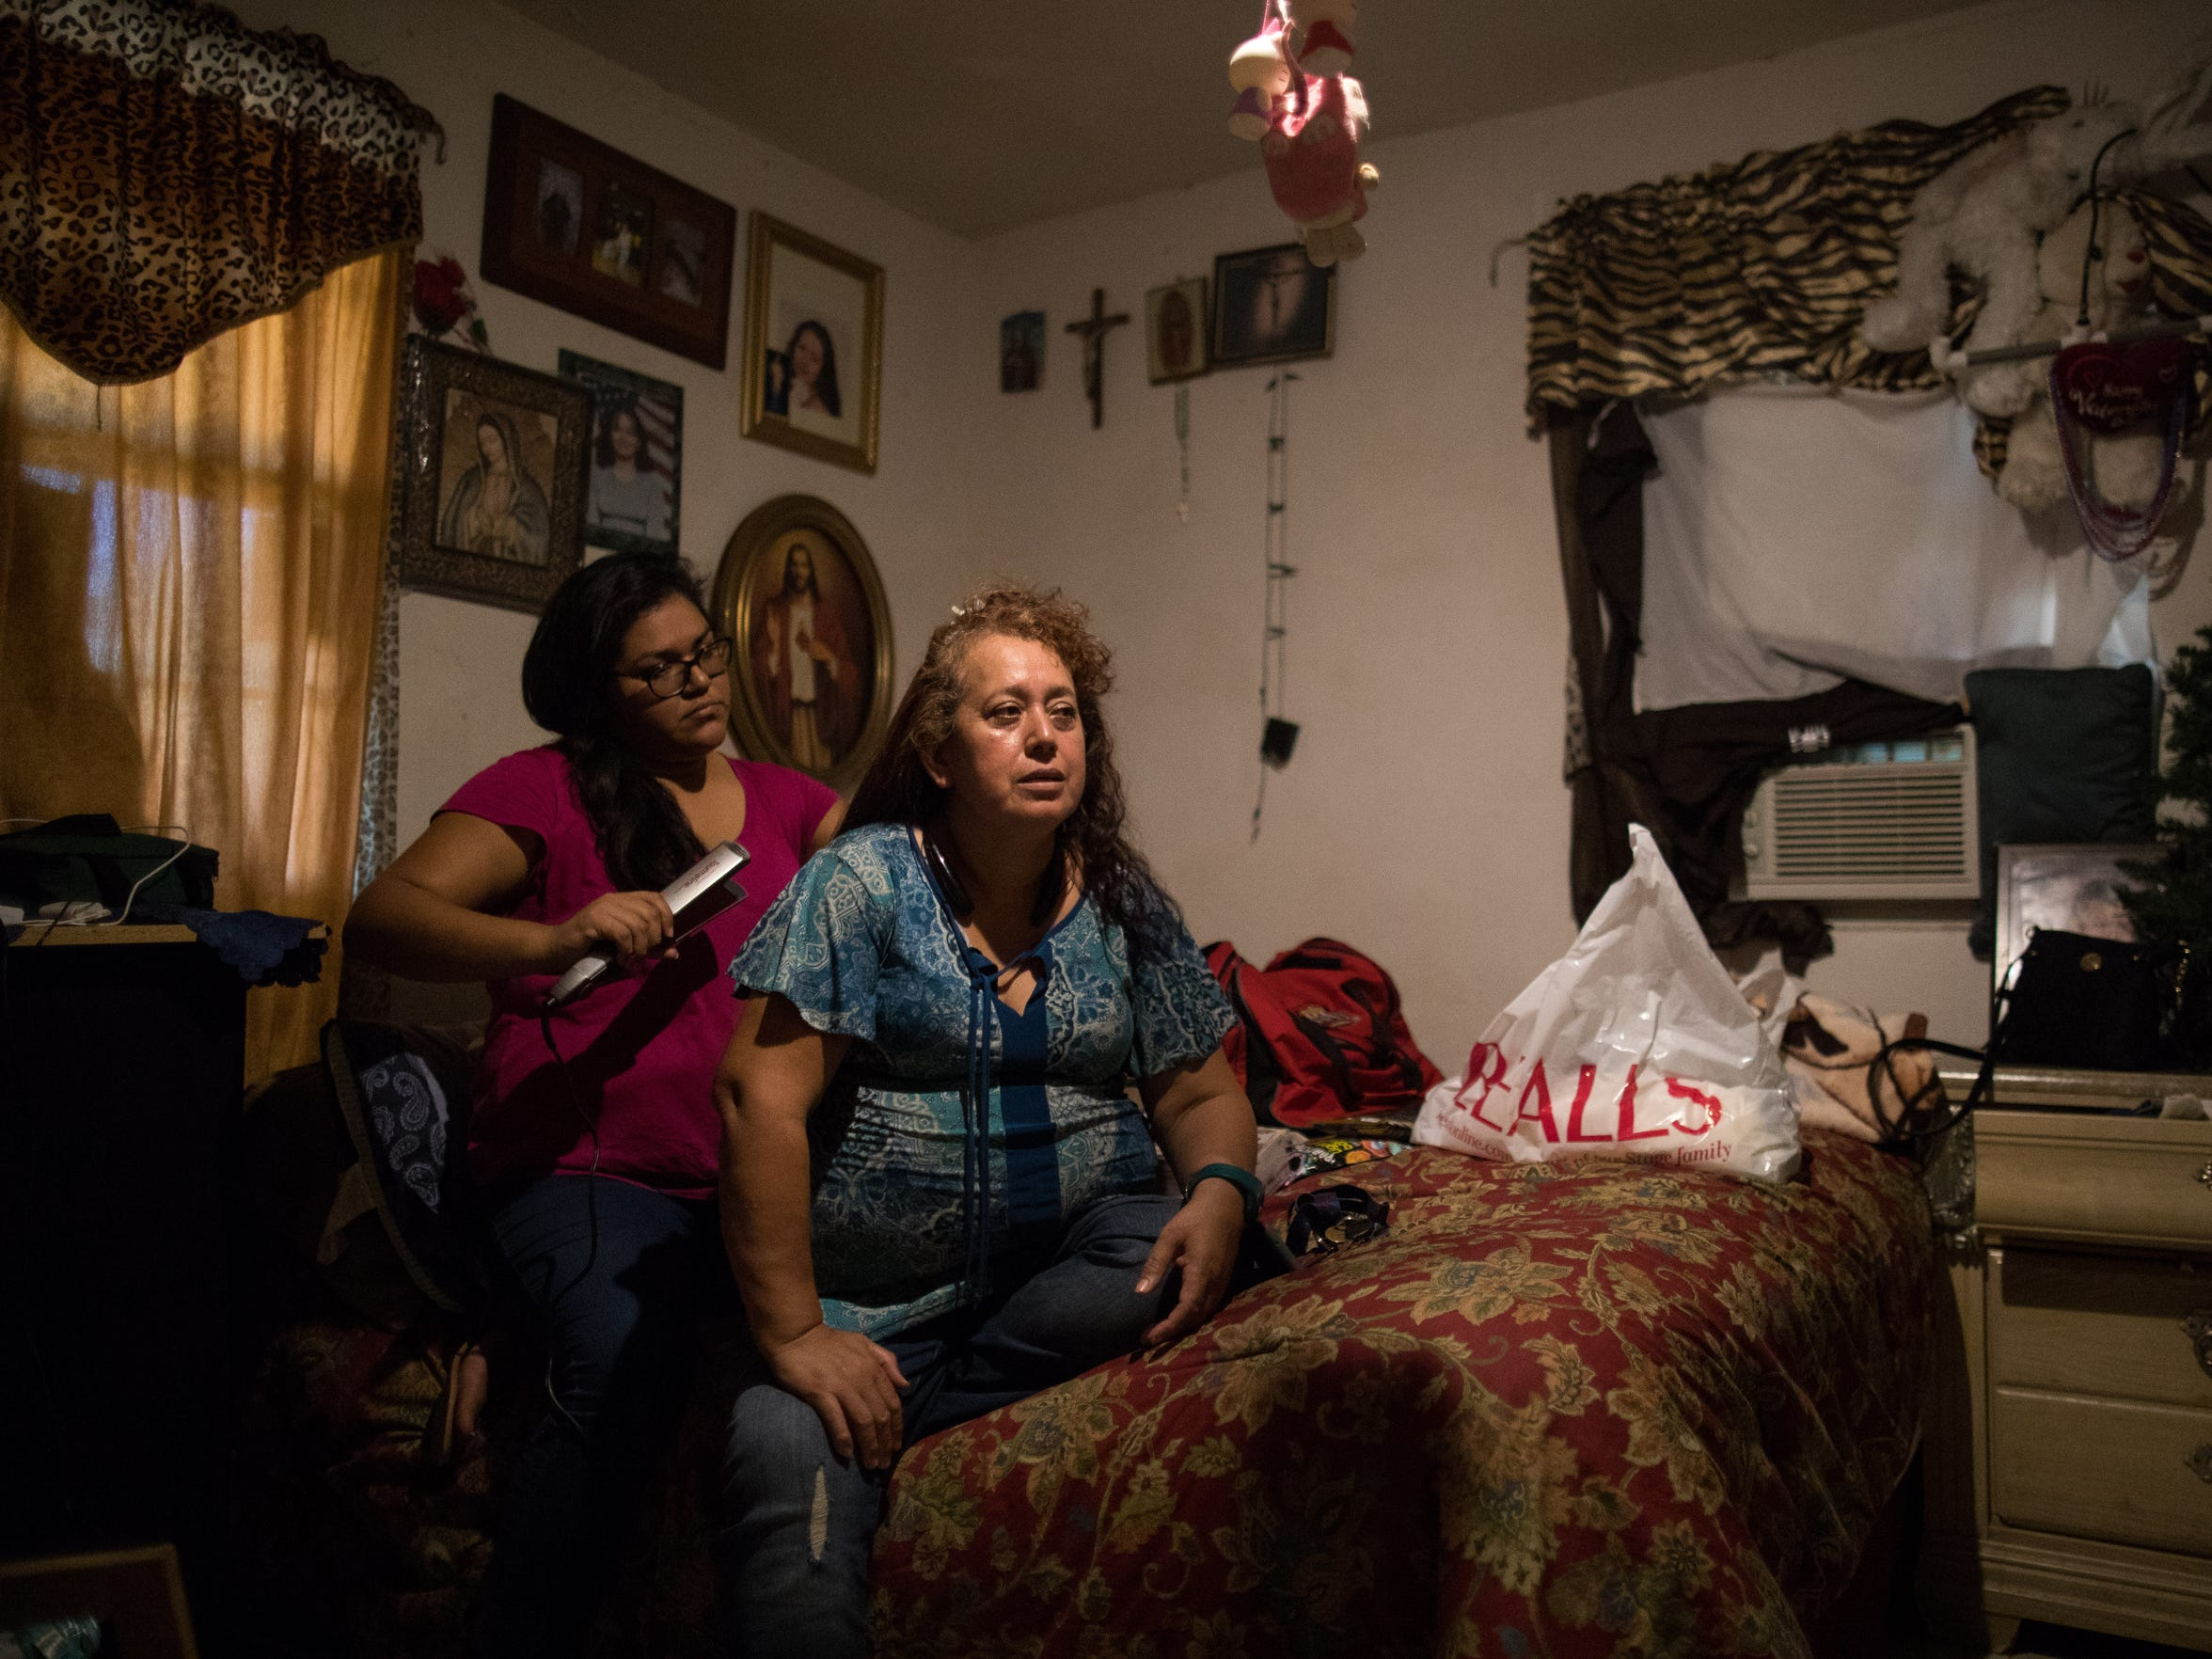 Maria Hernadez straightens her mother Carlota Palomo's hair as they prepare for her 50th birthday party at her house in Alamo, Texas on Nov. 4, 2017.  Hernadez is a DACA recipient who was brought to the U.S from Mexico at the age of 4 by her grandmother to escape an abusive father. She lives in Kingsville, Texas.